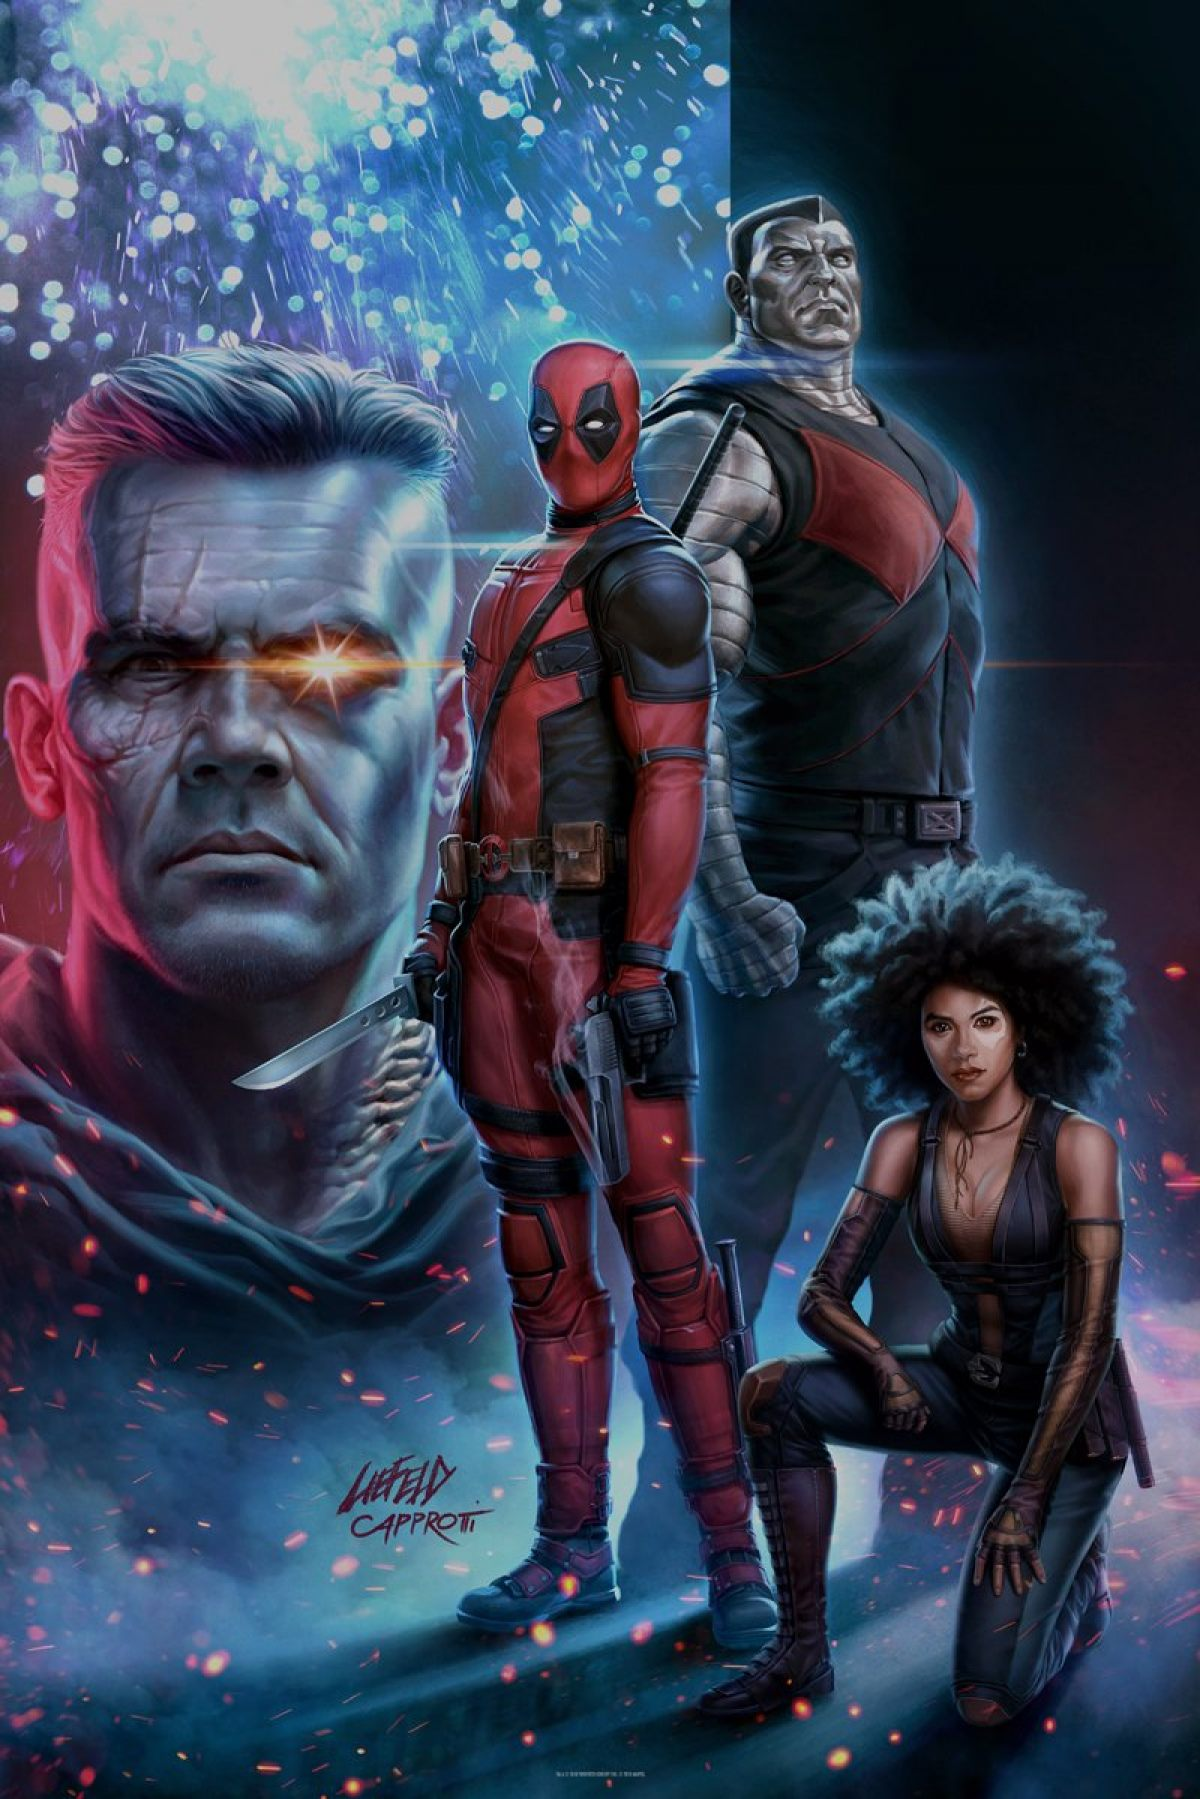 Deadpool 2 Movie: Don't Call It A Comeback: The Final DEADPOOL 2 Trailer Is